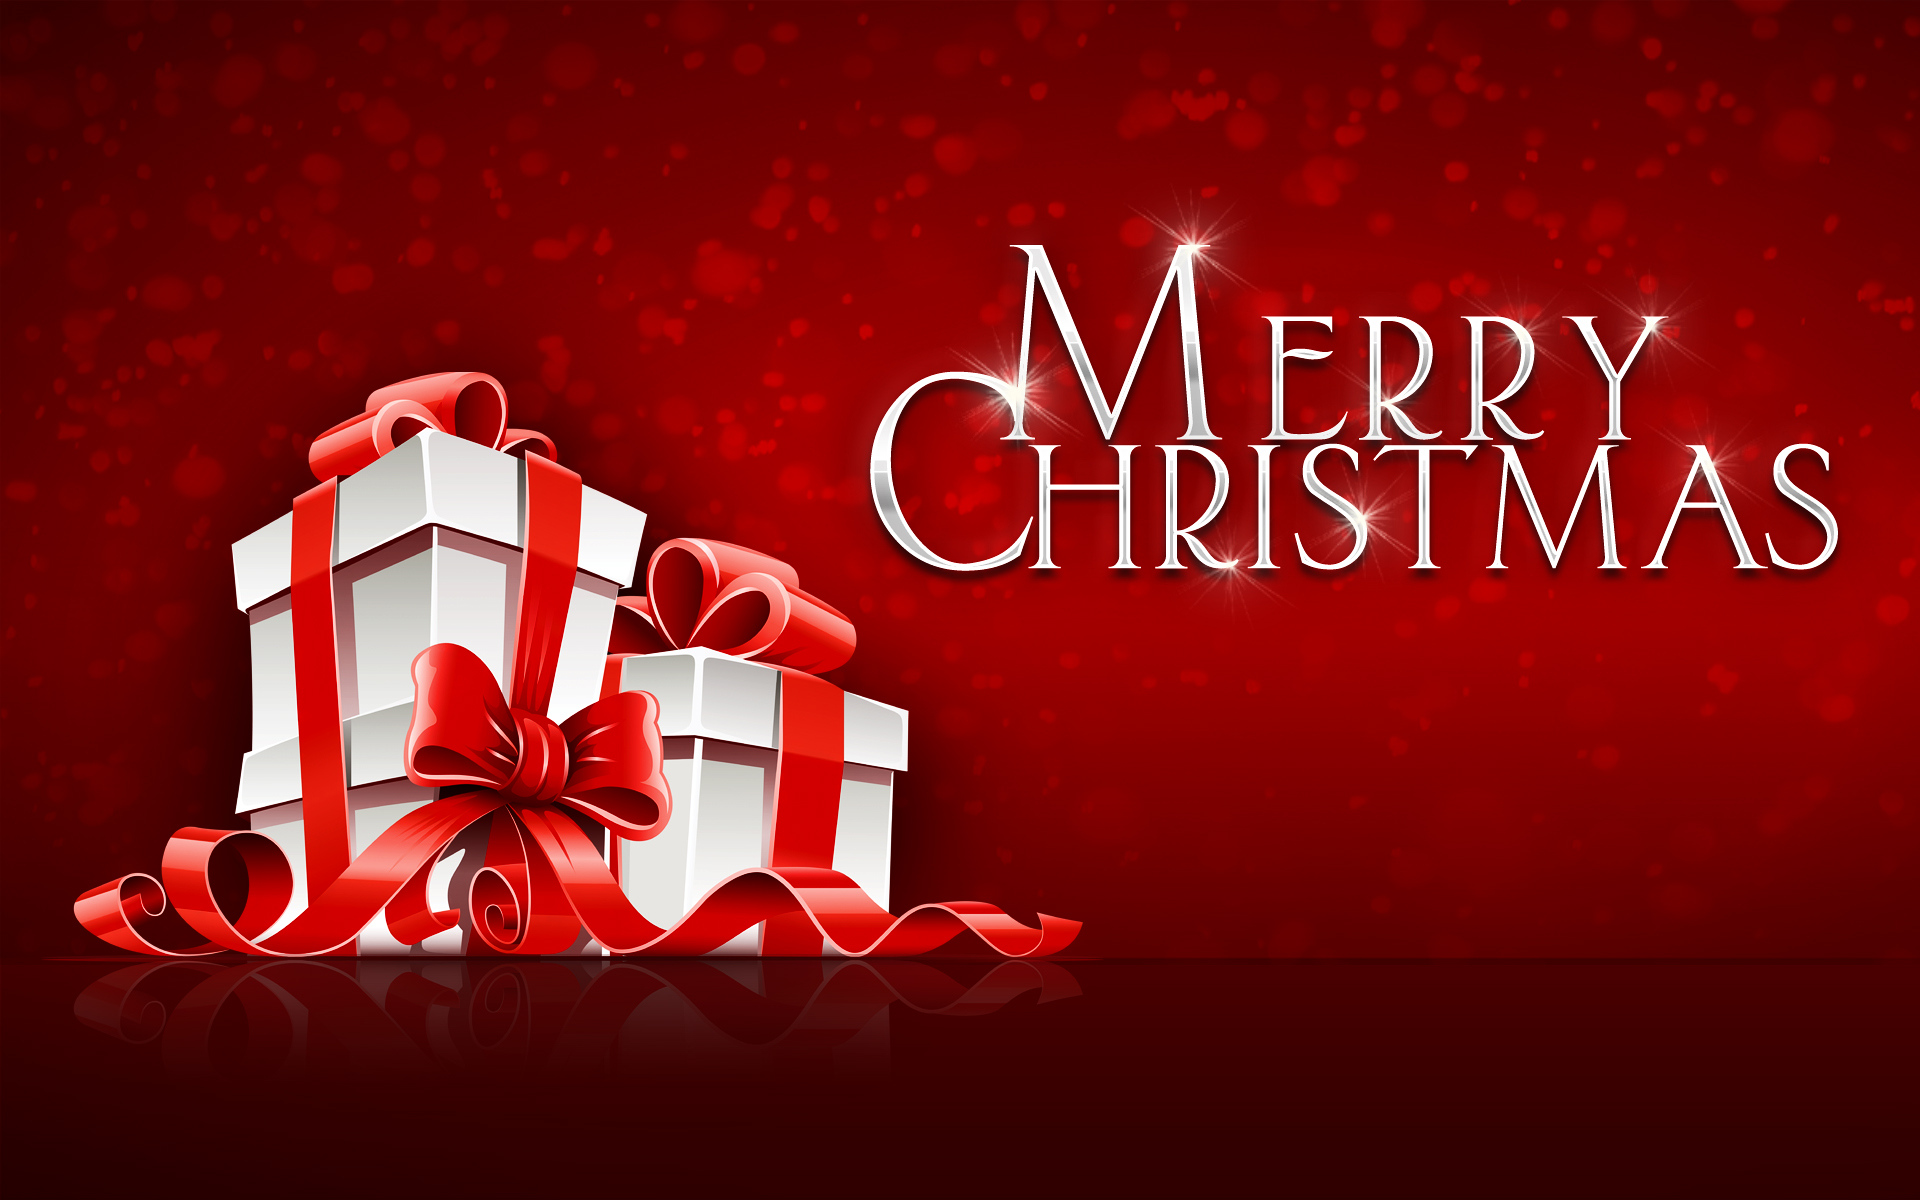 Best}* Merry Christmas 2016 WhatsApp & Facebook Status - Merry ...